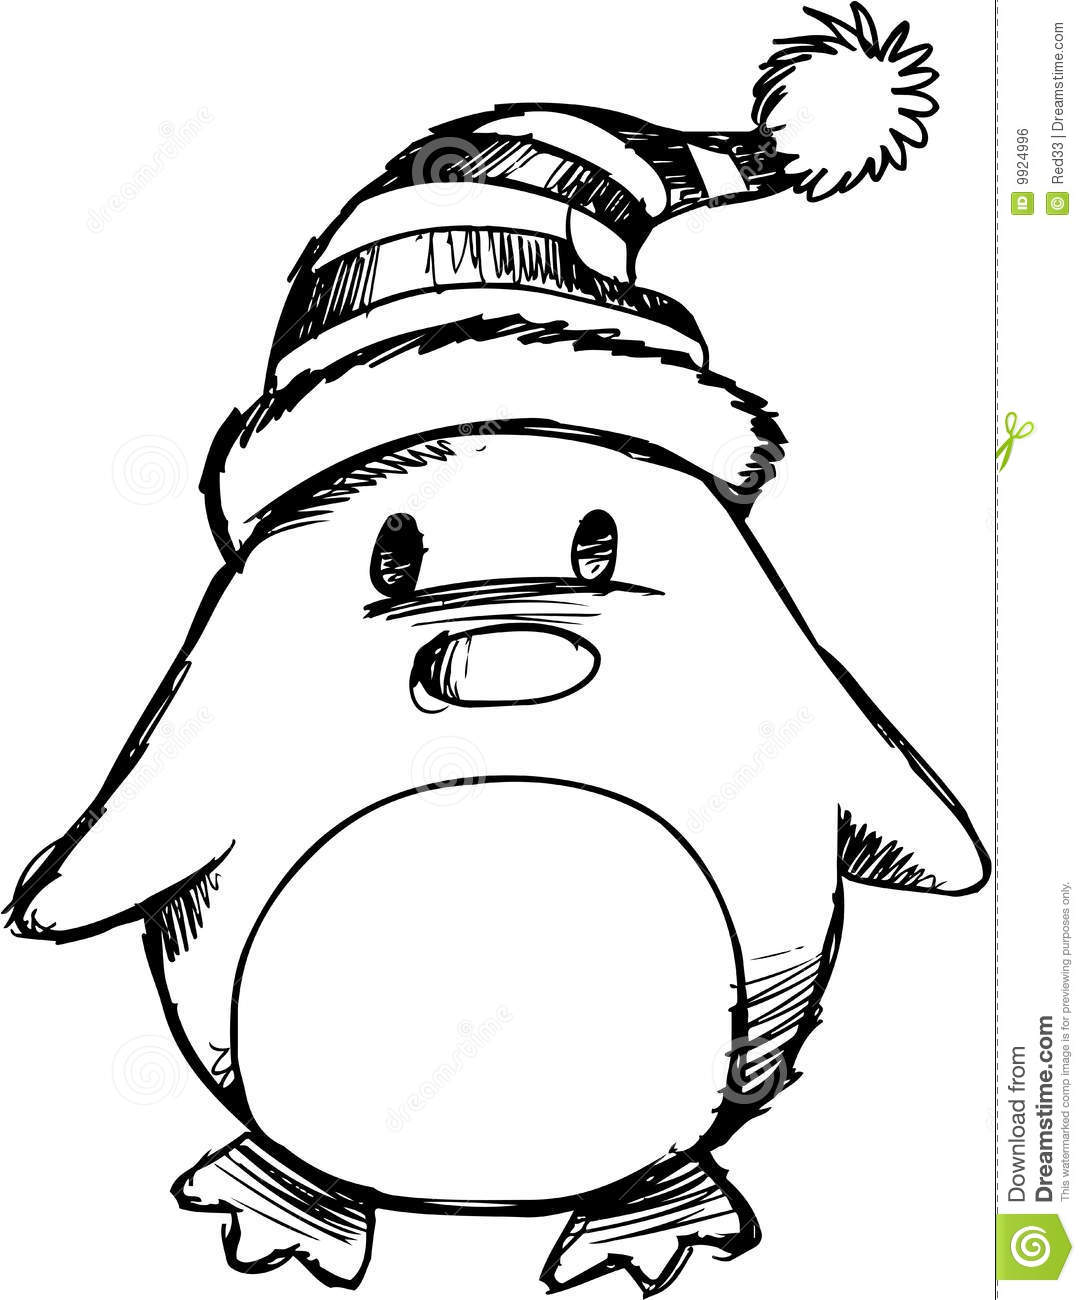 Sketchy Christmas Penguin Vector Royalty Free Stock Image - Image ...